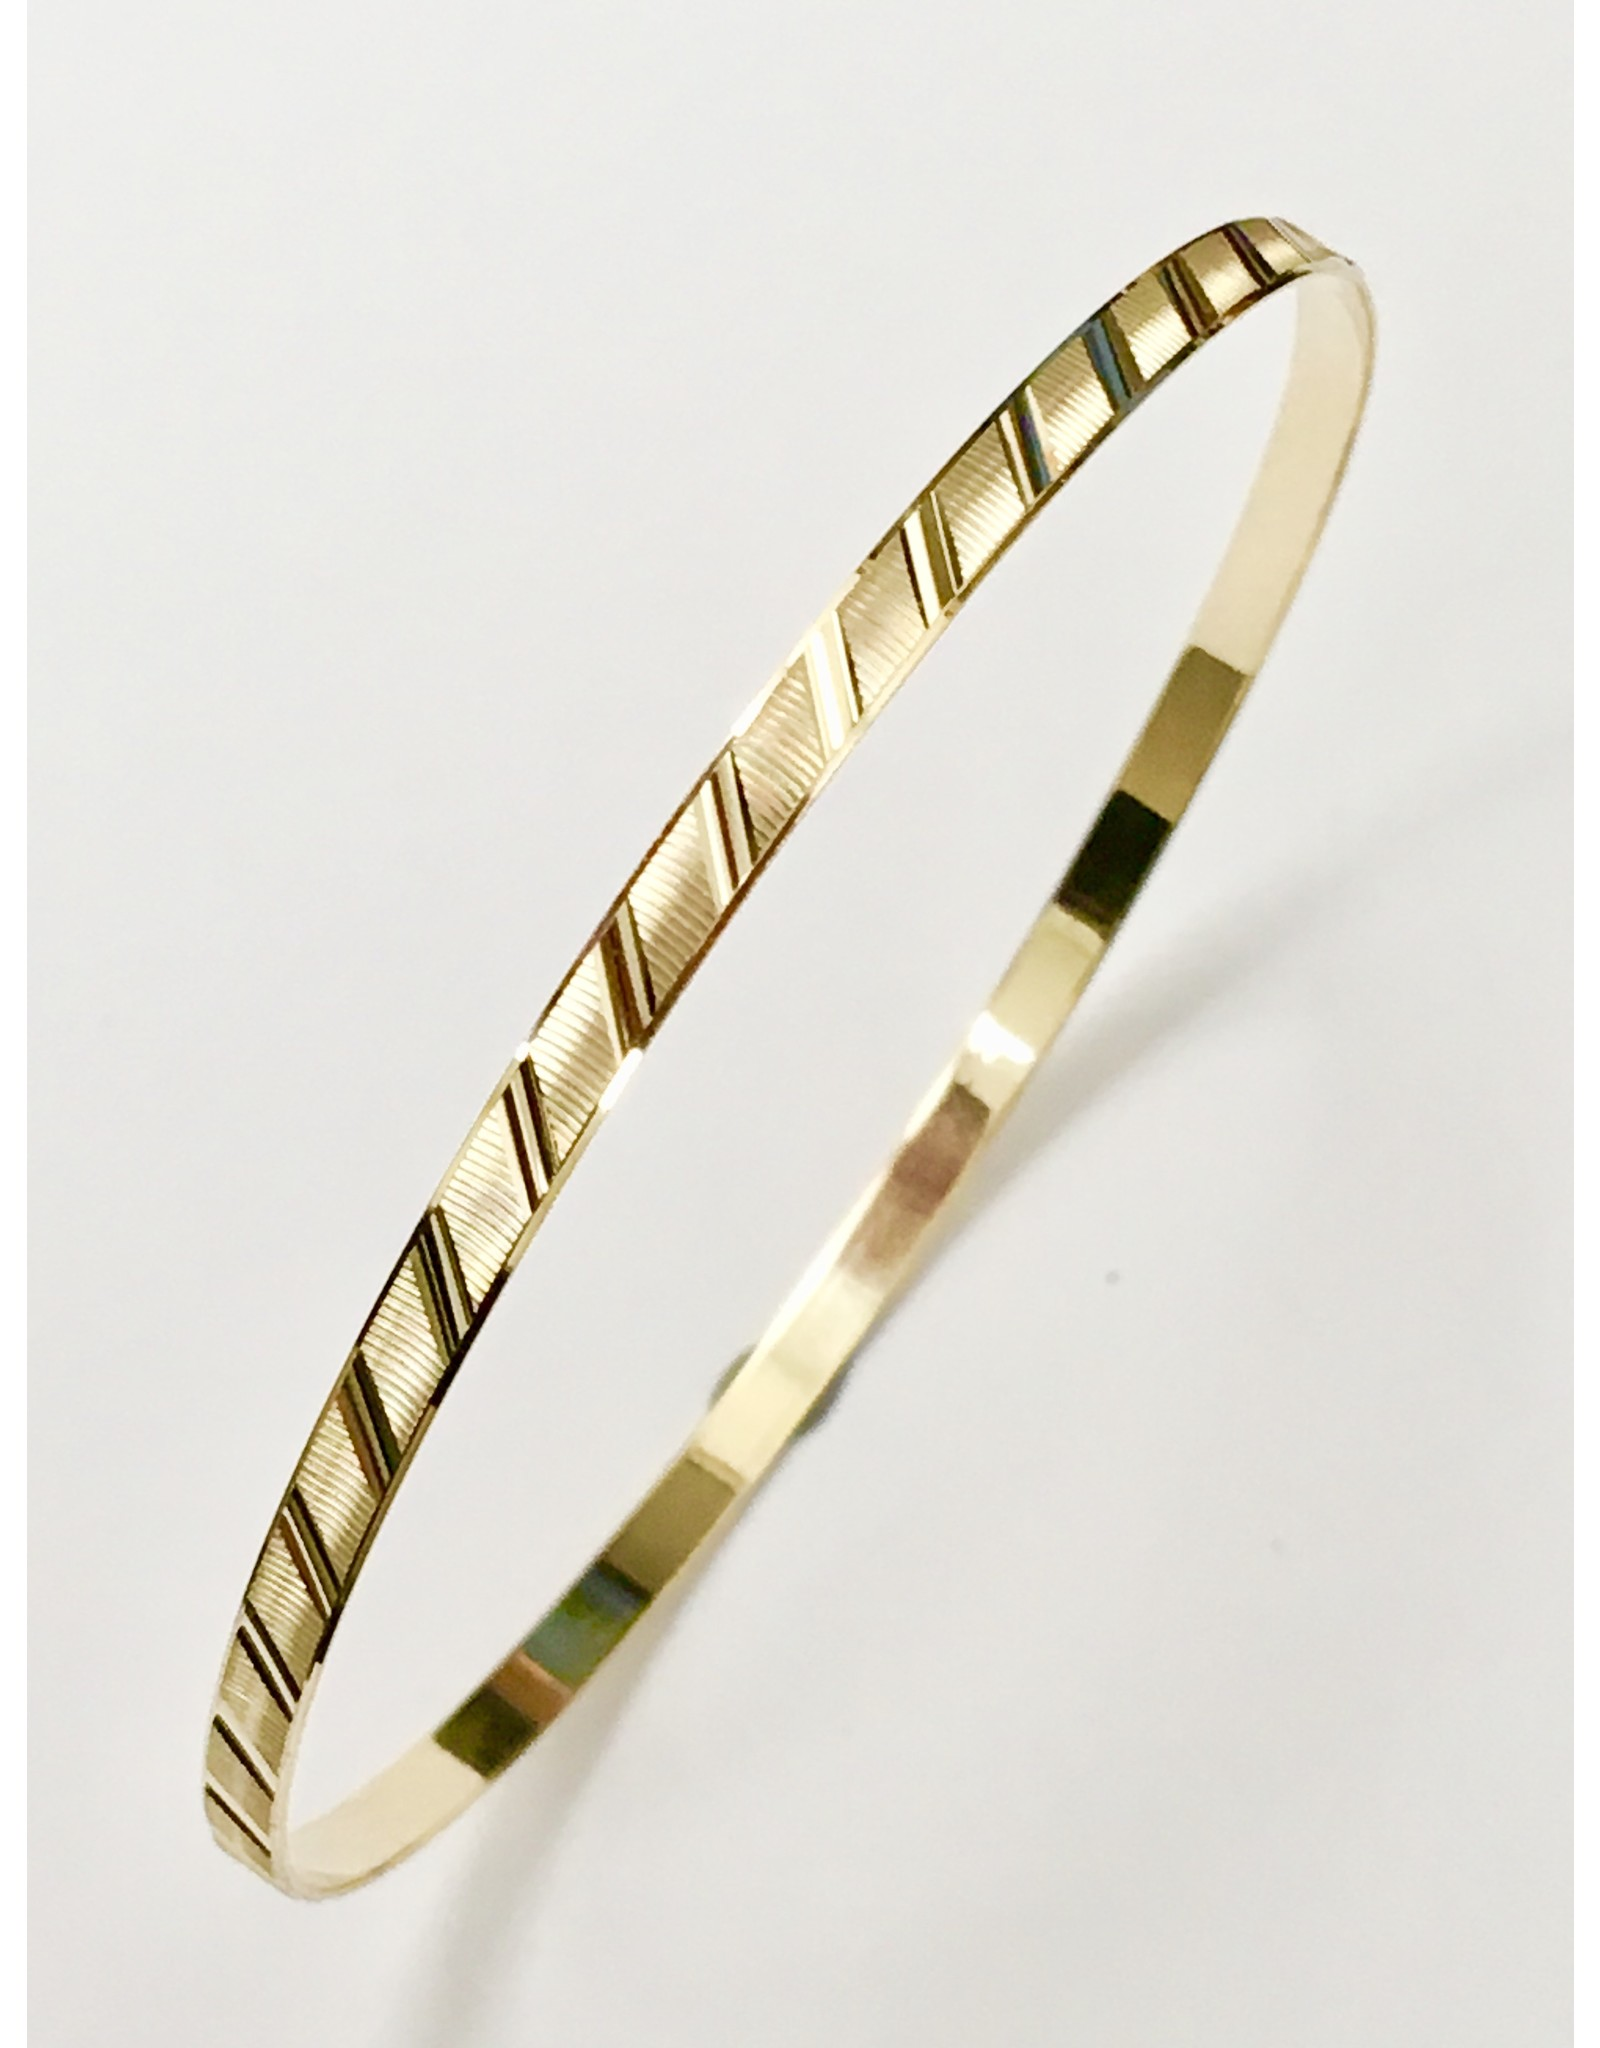 3.2mm Fancy Cut Bangle 10KY